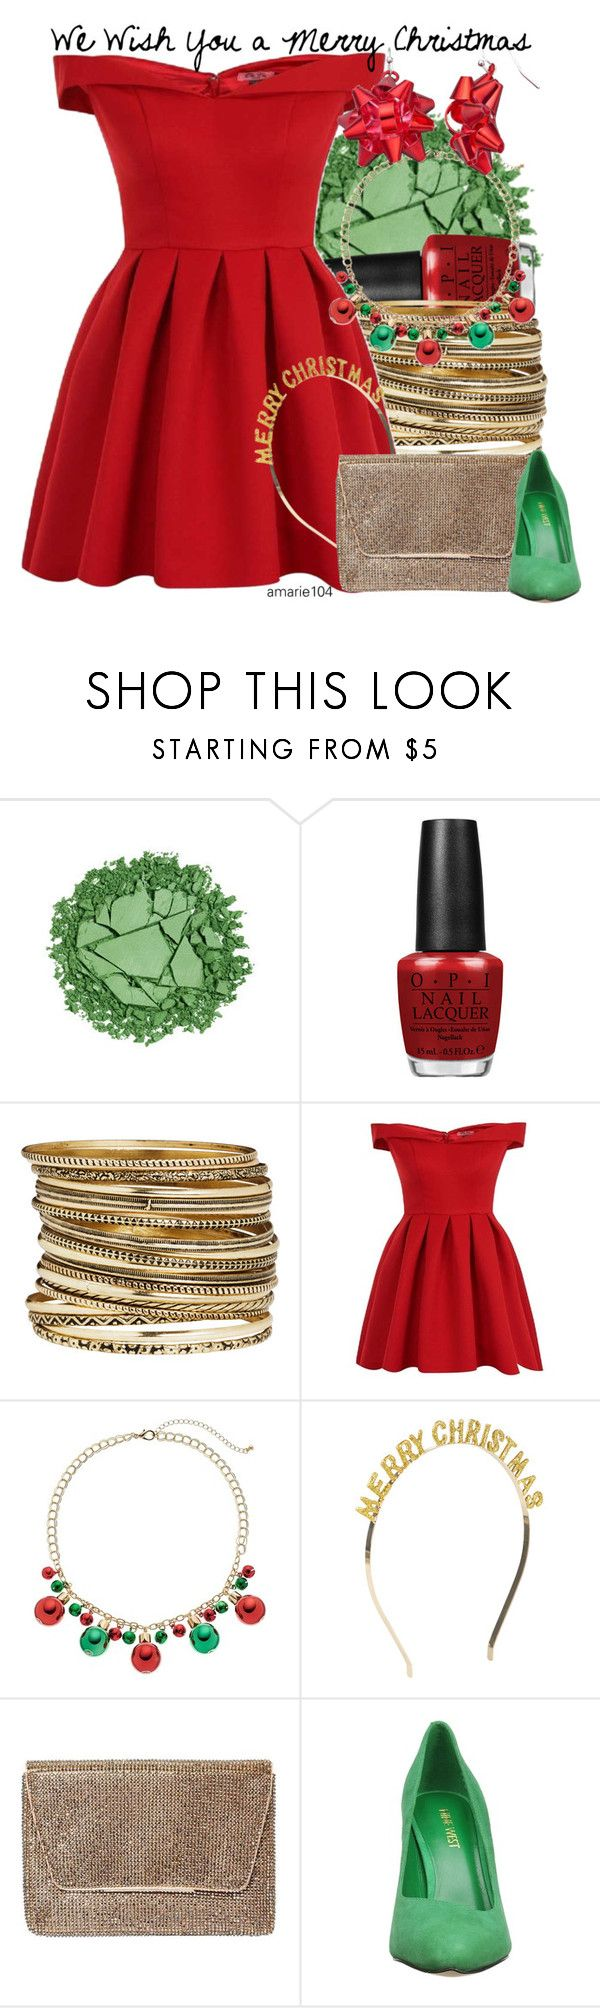 """""""We Wish You A Merry Christmas"""" by amarie104 ❤ liked on Polyvore featuring Urban Decay, OPI, H&M, Chi Chi, Accessorize, Dorothy Perkins and Nine West"""